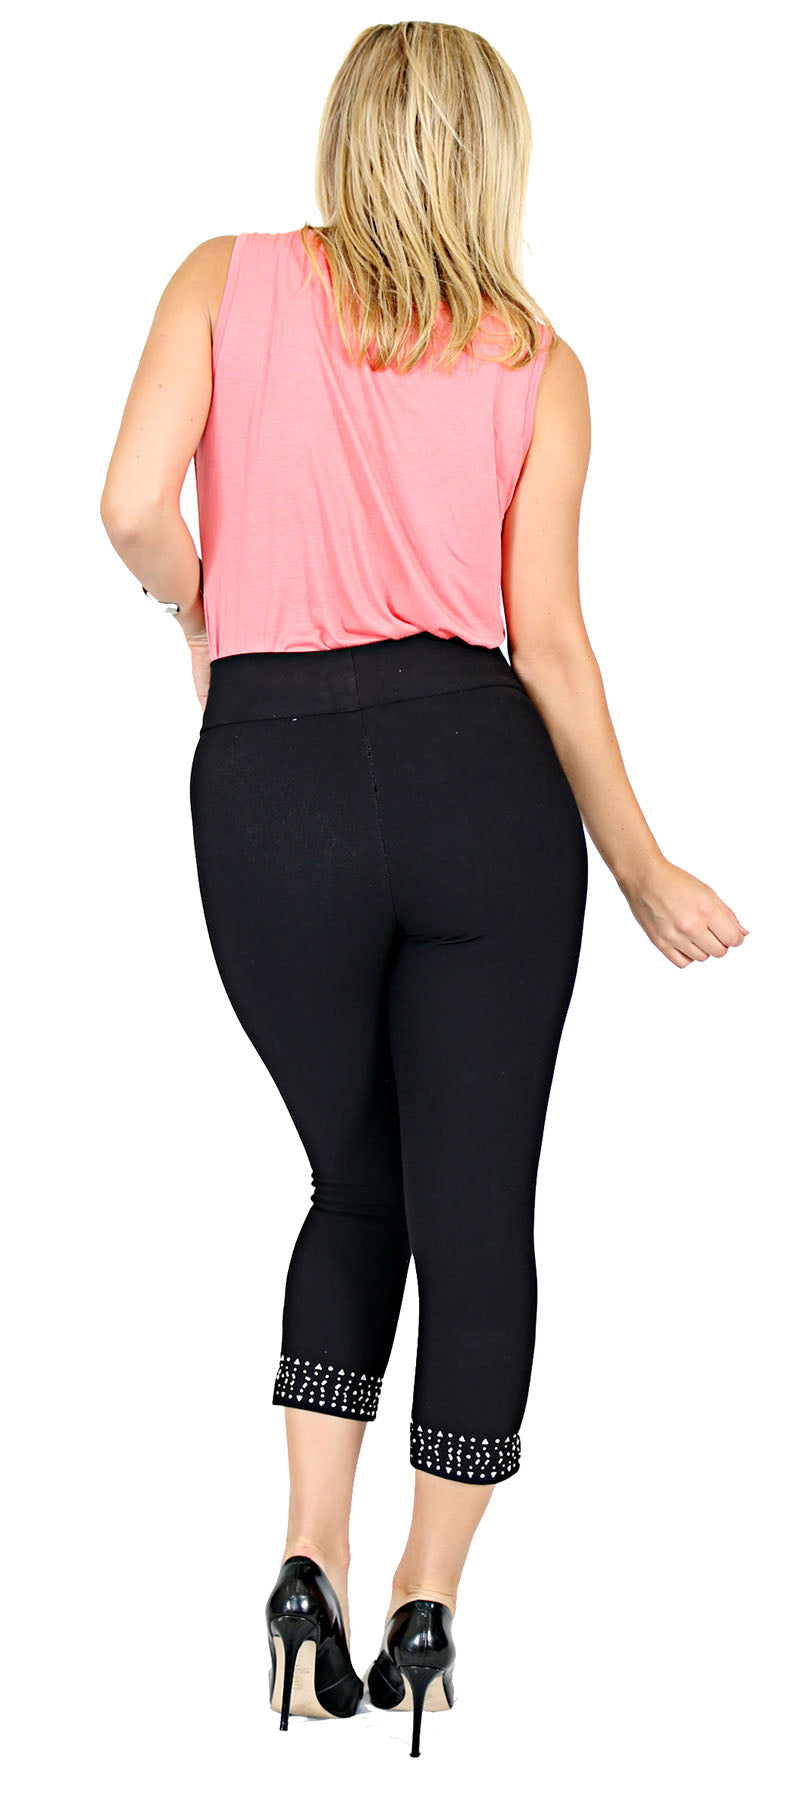 TrueSlim™ Black Capri Leggings with Stone